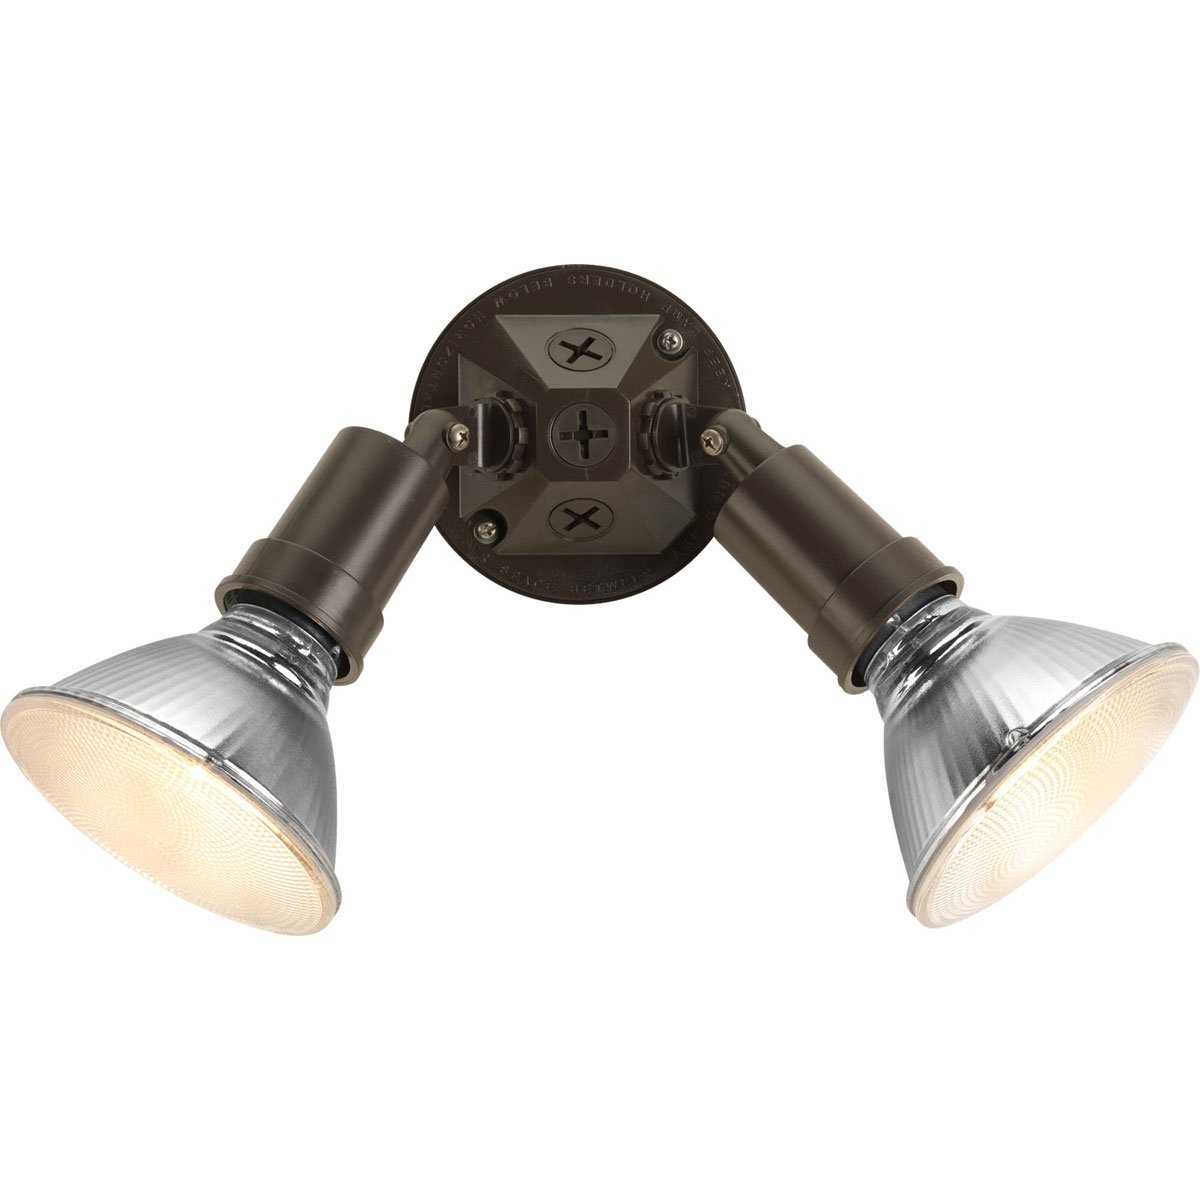 Progress Lighting P5212-20 Double Non-Metallic Par Lampholder In Bronze Finish, Antique Bronze